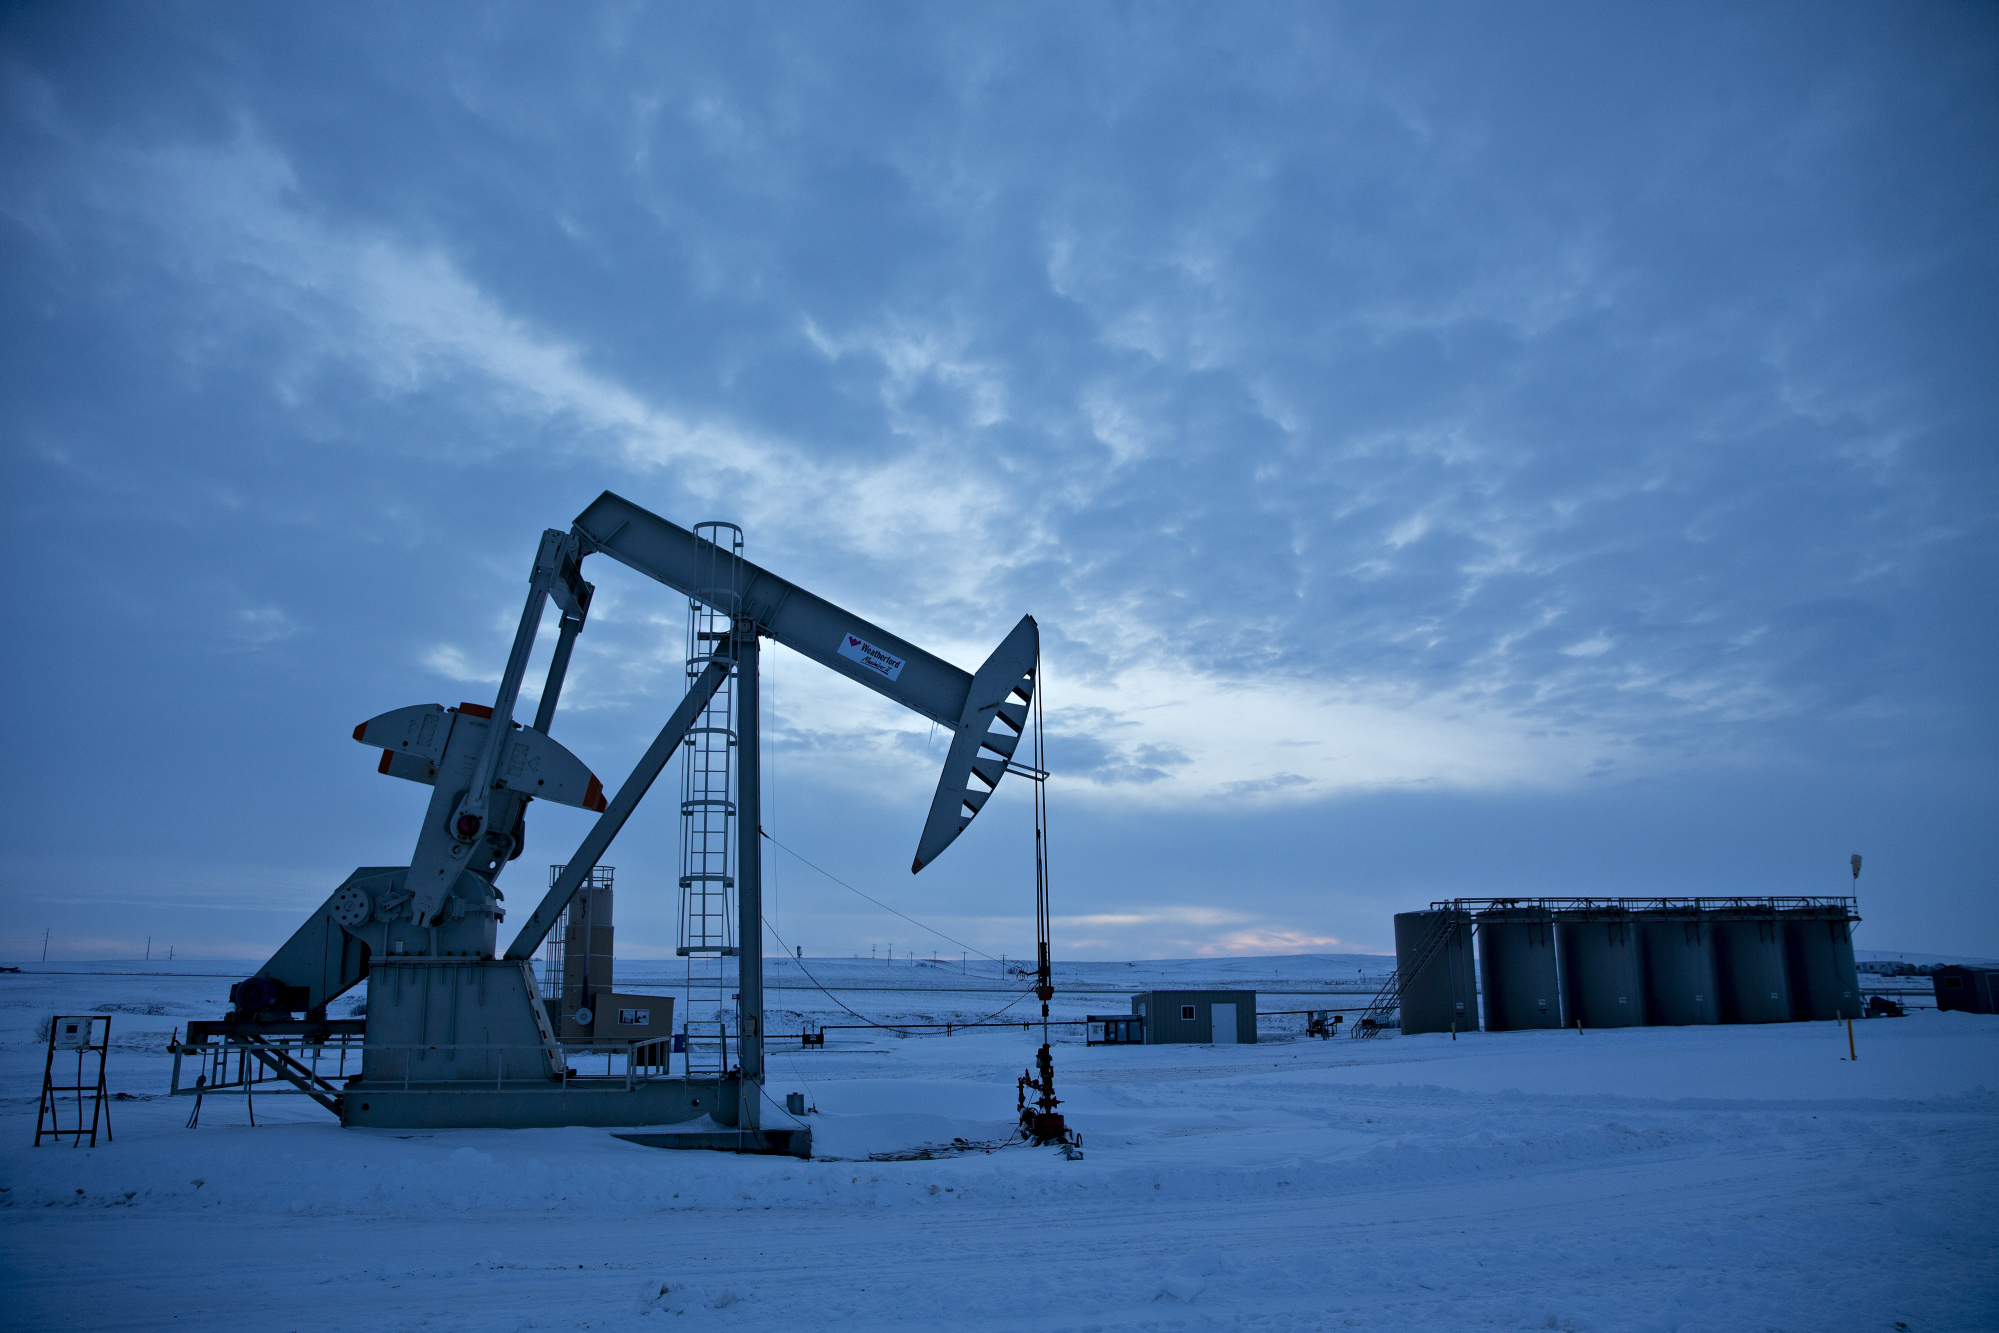 A pumpjack operates above an oil well in the Bakken Formation outside Williston, North Dakota, U.S., on Friday, March 9, 2018. When oil sold for $100 a barrel, many oil towns dotting the nation's shale basins grew faster than its infrastructure and services could handle. Since 2015, as oil prices floundered, Williston has added new roads, including a truck route around the city, two new fire stations, expanded the landfill, opened a new waste water treatment plant and started work on an airport relocation and expansion project. Photographer: Daniel Acker/Bloomberg